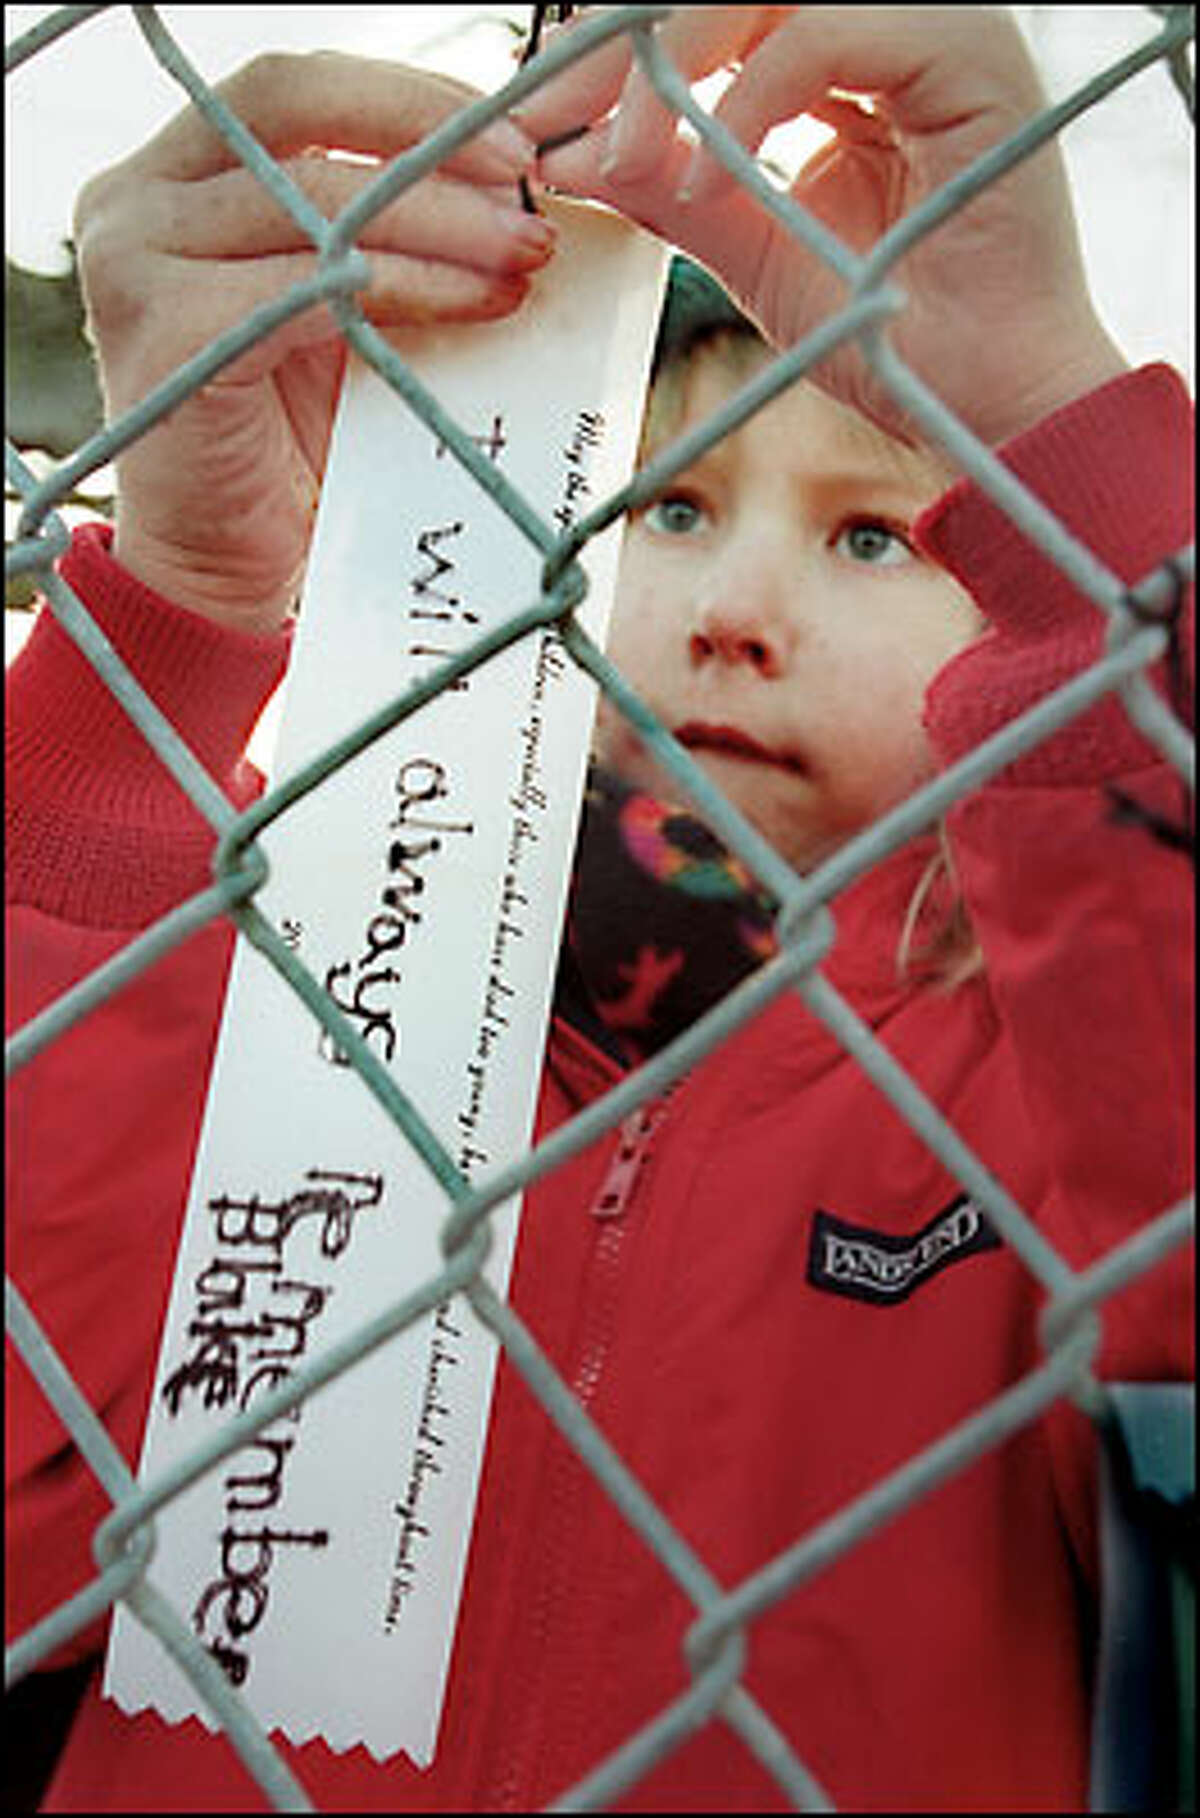 John Hay Elementary first-grader Corby Johnson ties a ribbon to a fence with a message to friend Blake Barnett-Clemetson, who died in the crash of Alaska Airlines Flight 261 in January 2000. The school broke ground on a memorial garden for crash victims yesterday.